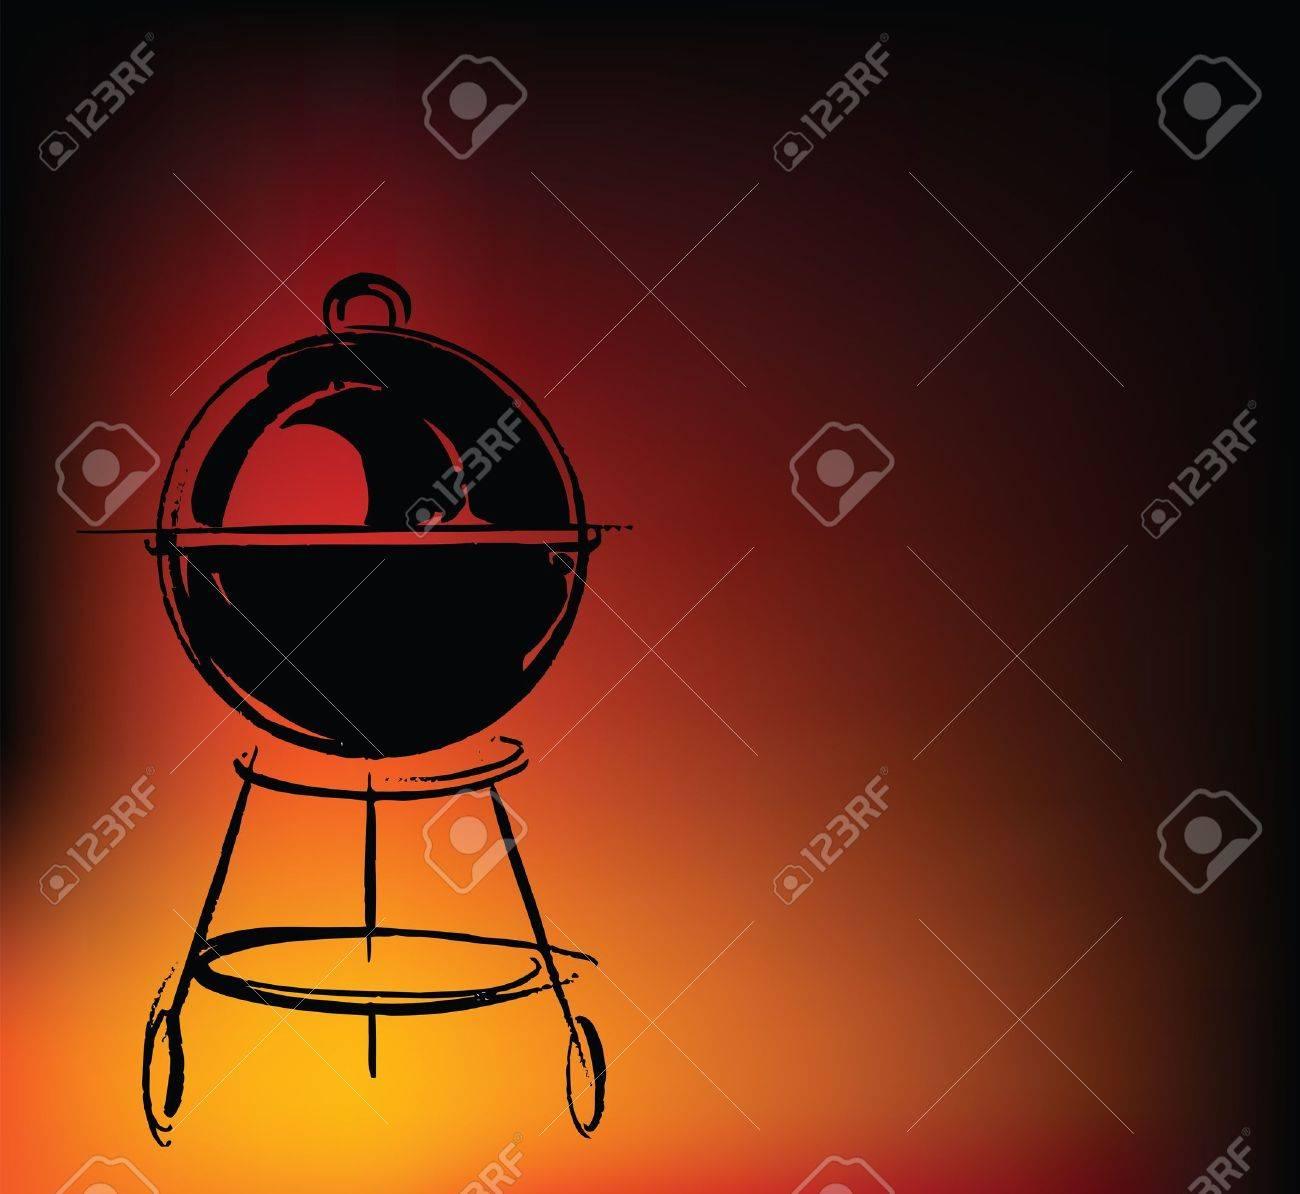 BBQ vector illustration Stock Vector - 10841949